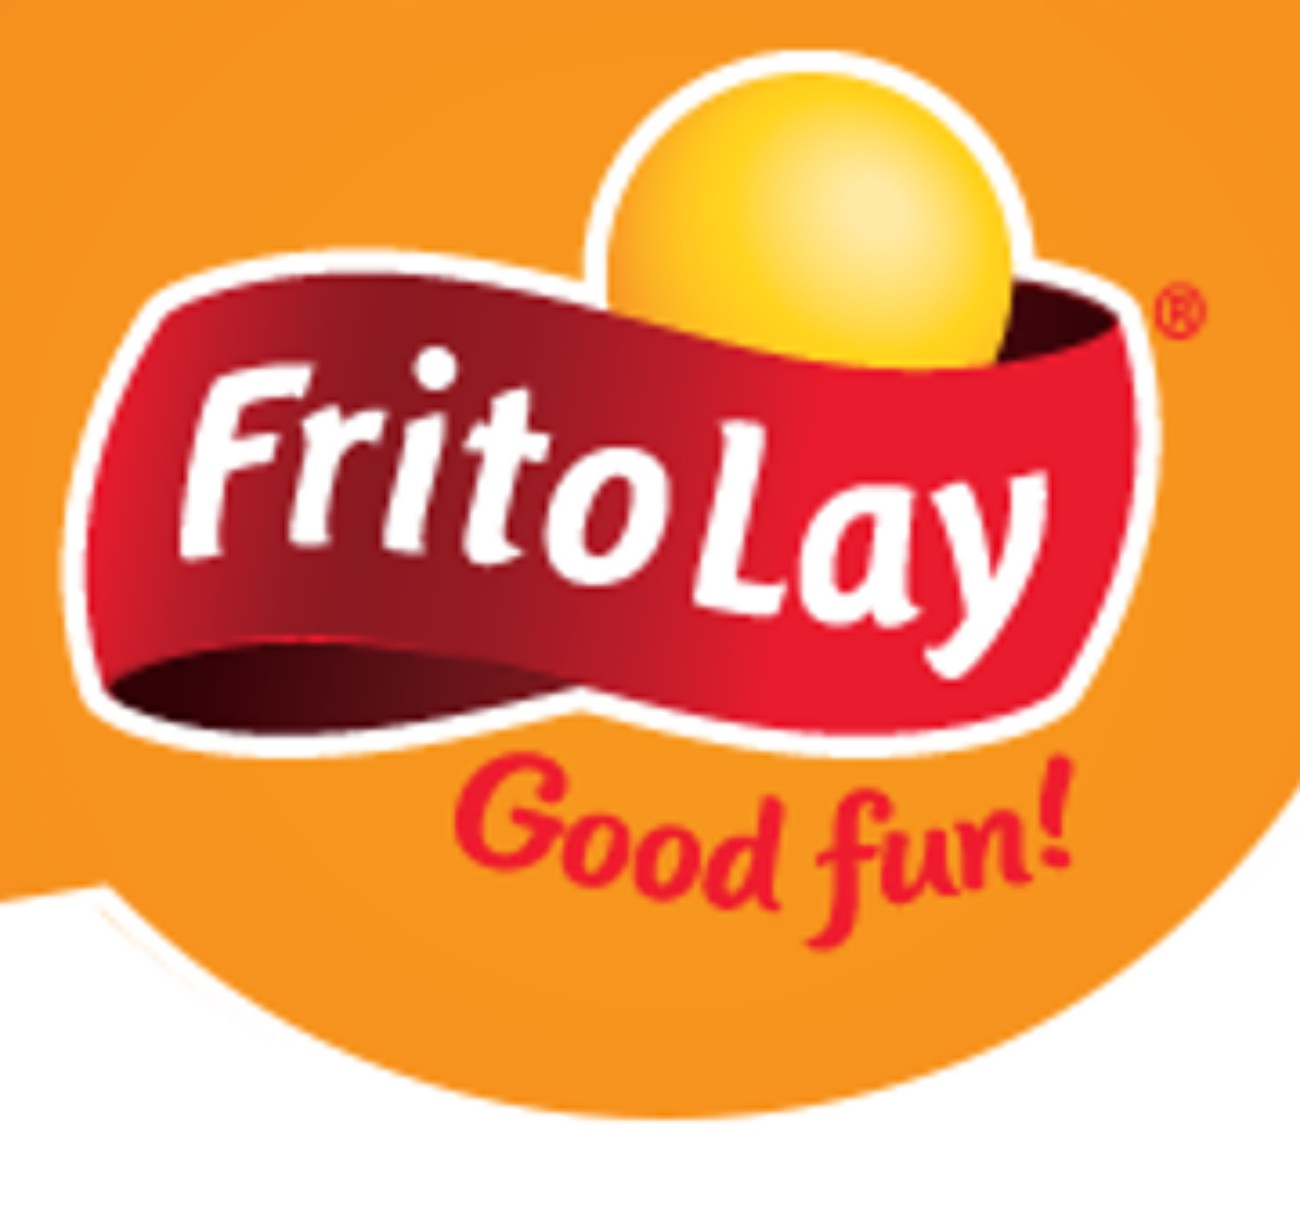 Image from FritoLay.com